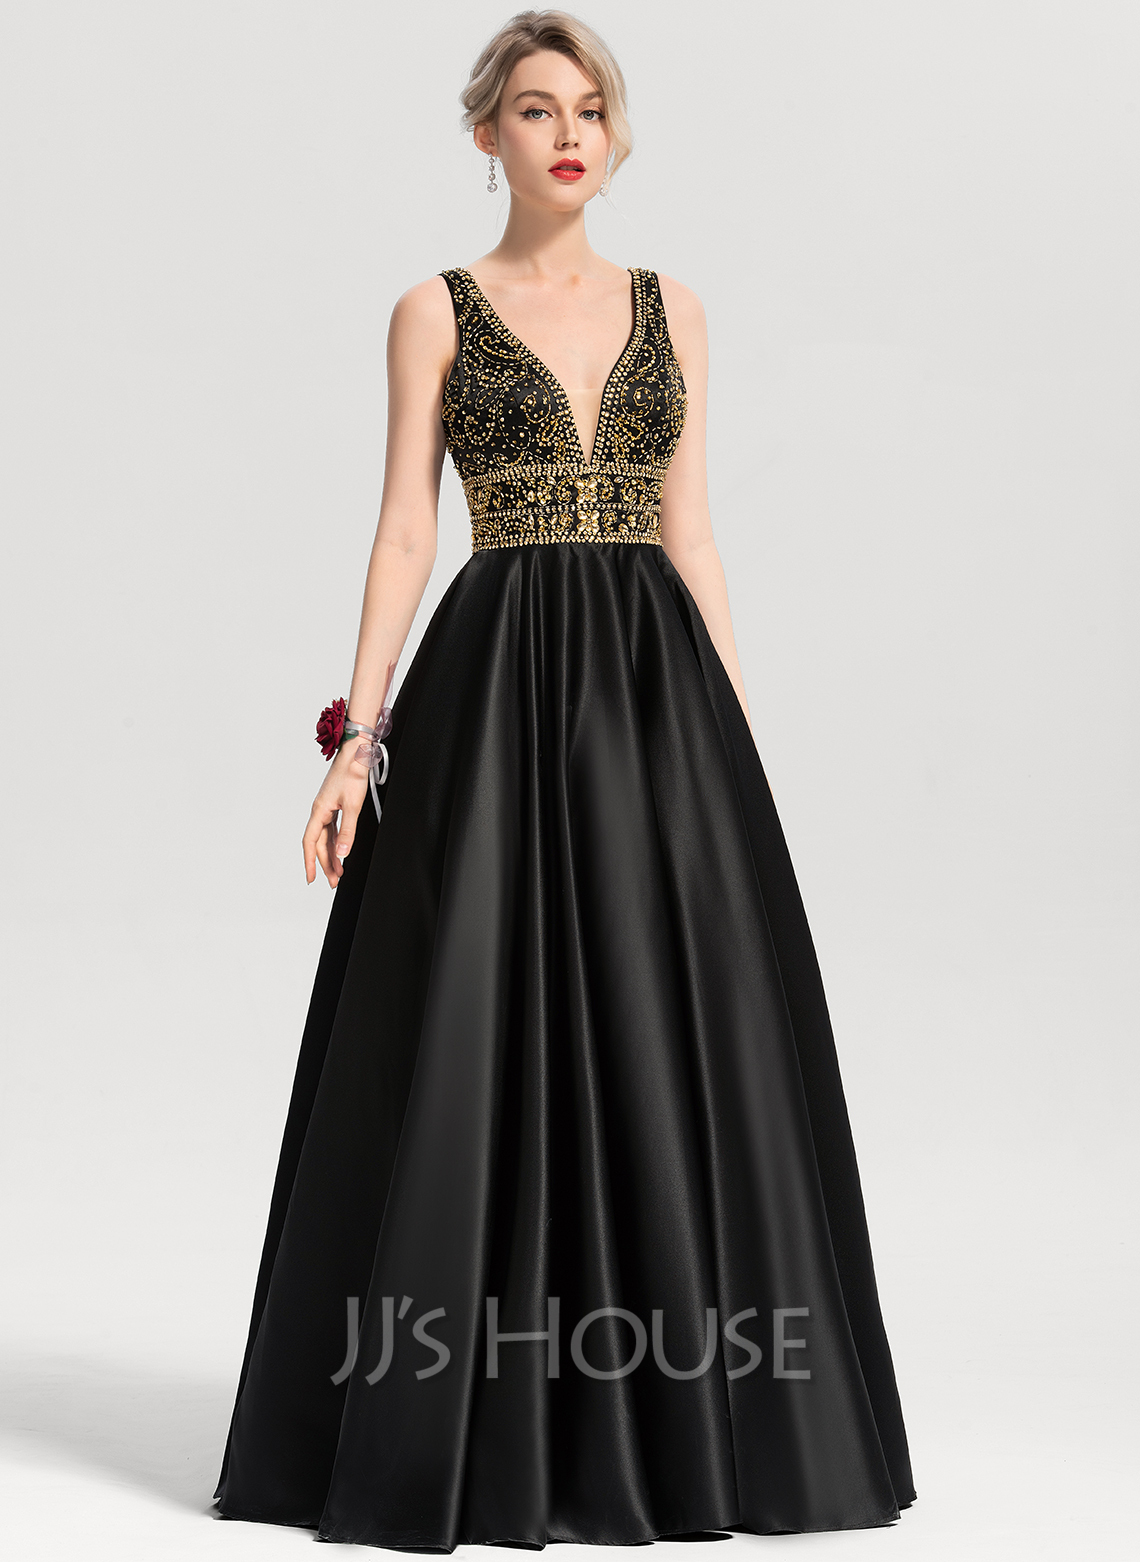 Ball Gown V Neck Floor Length Satin Prom Dresses With Beading Sequins Loading Zoom